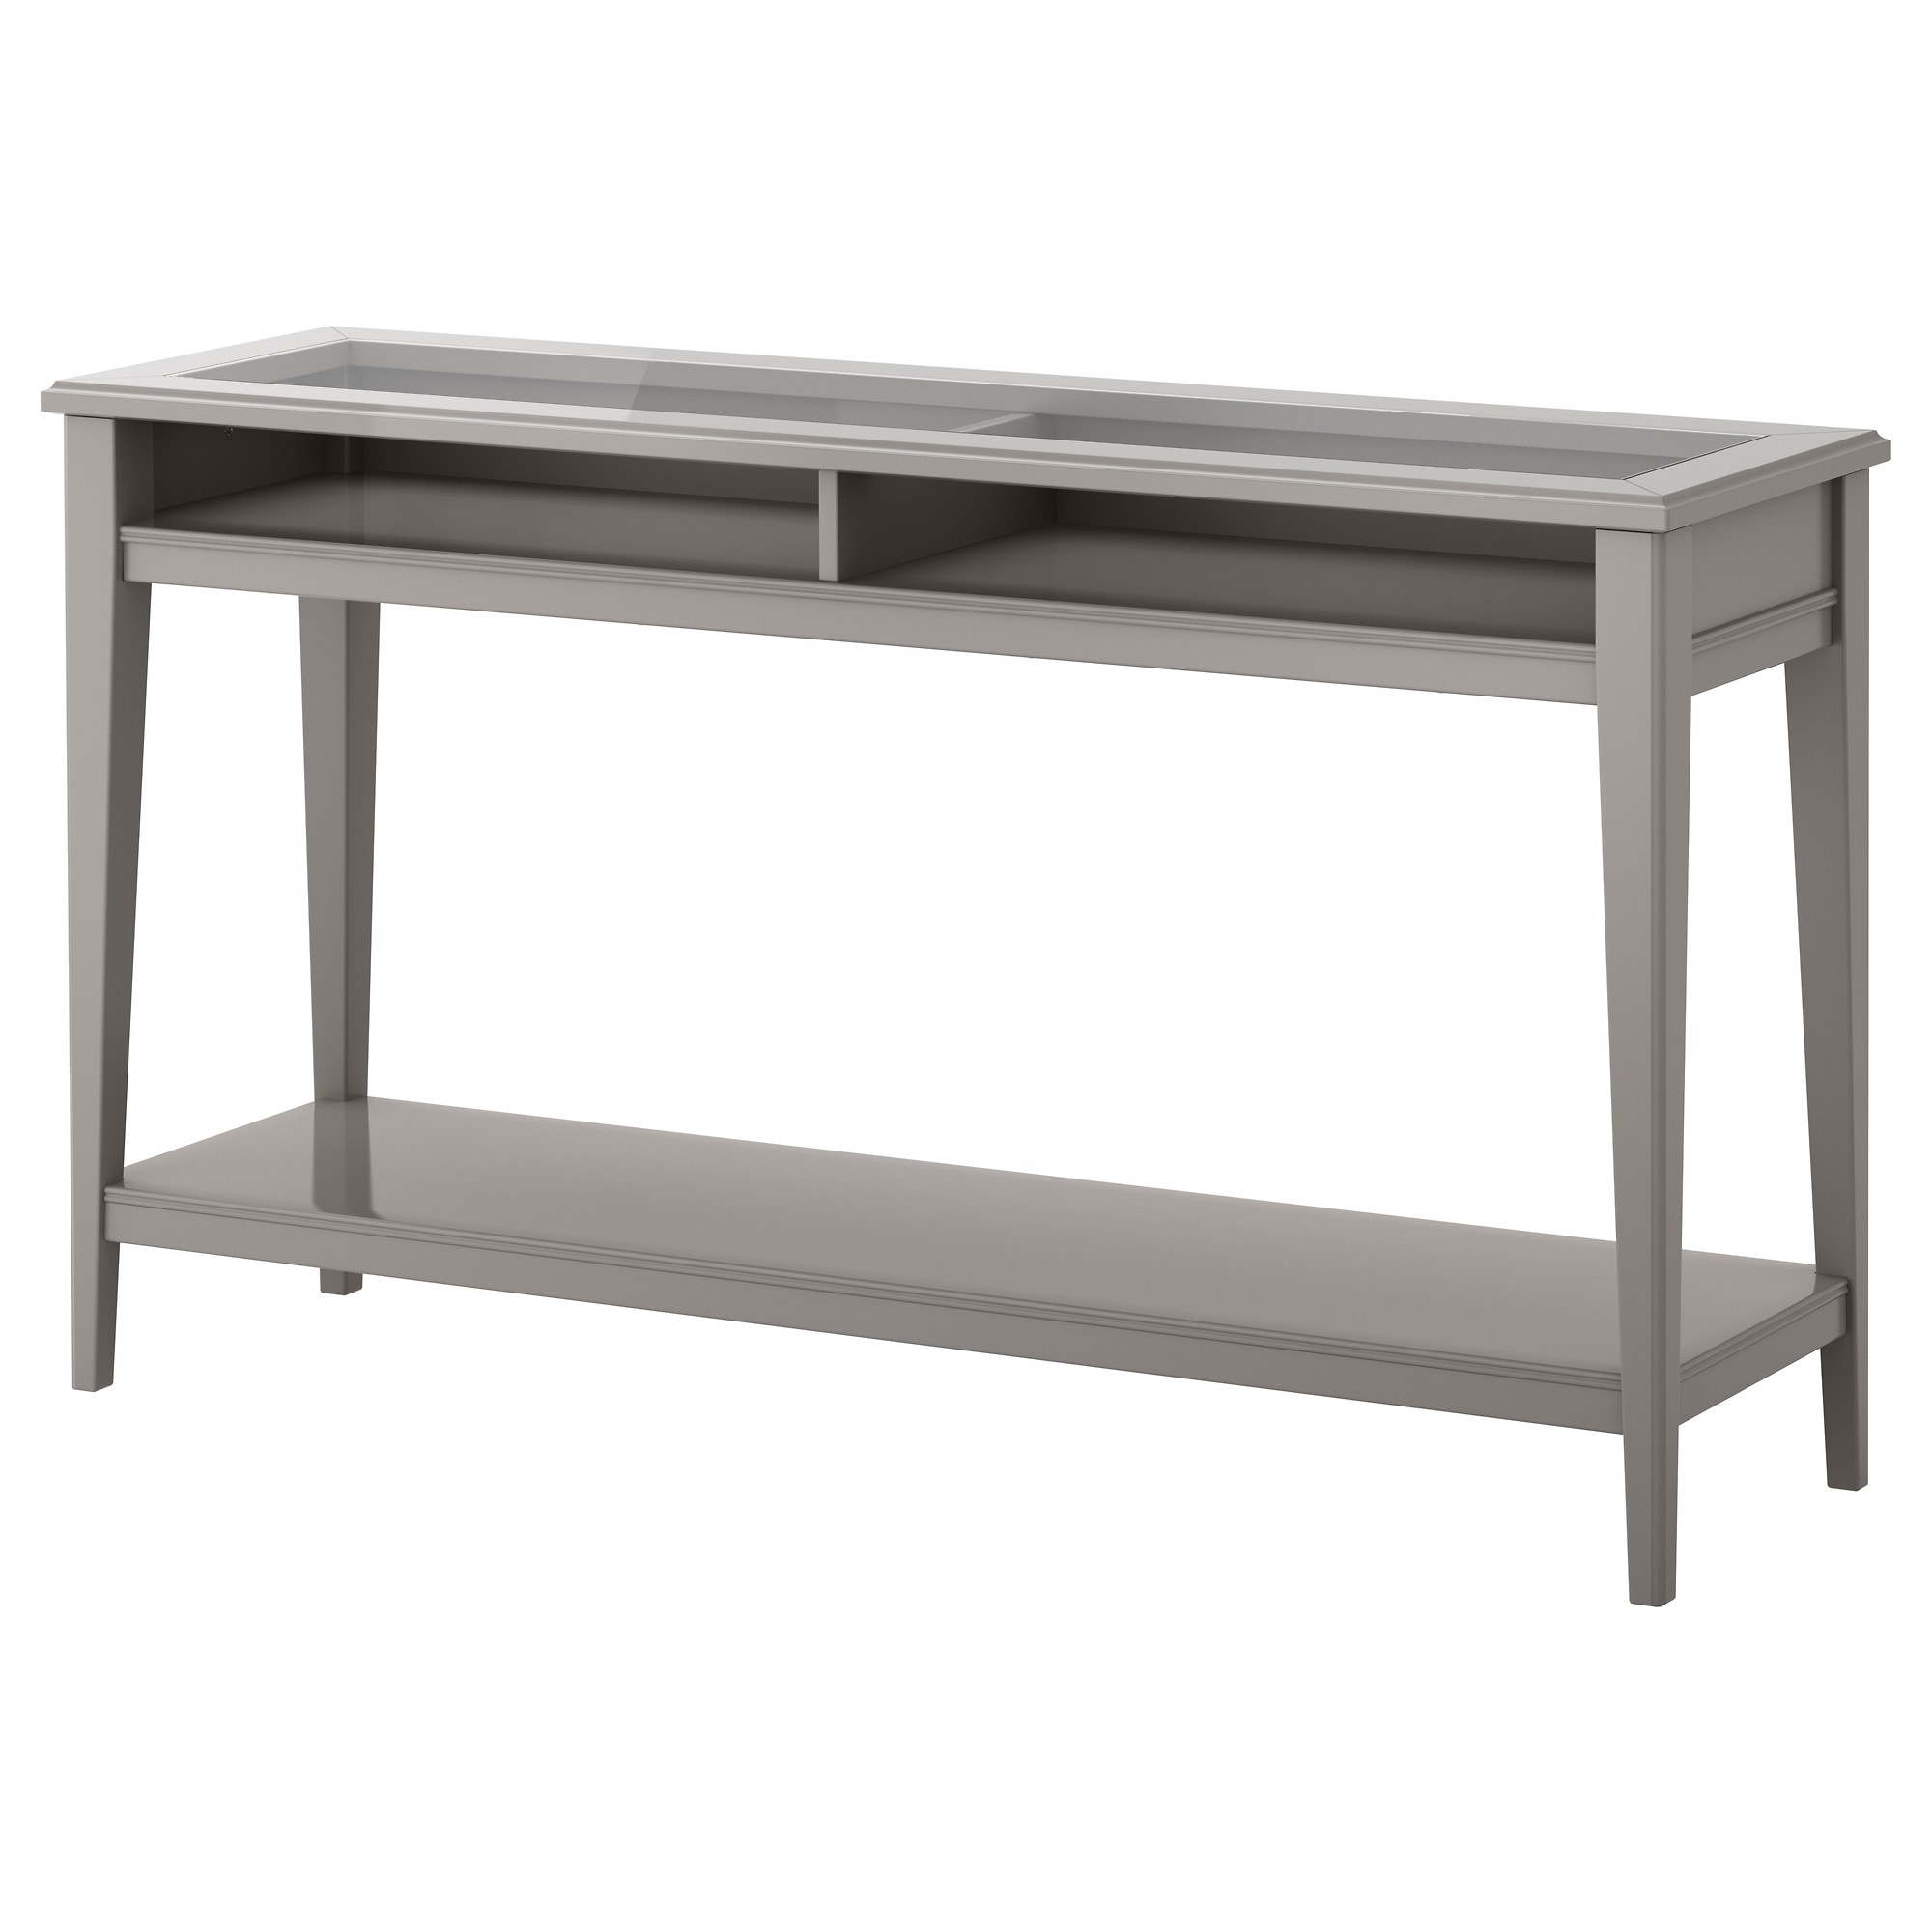 LIATORP Console Table Grayglass IKEA - Console tables ikea